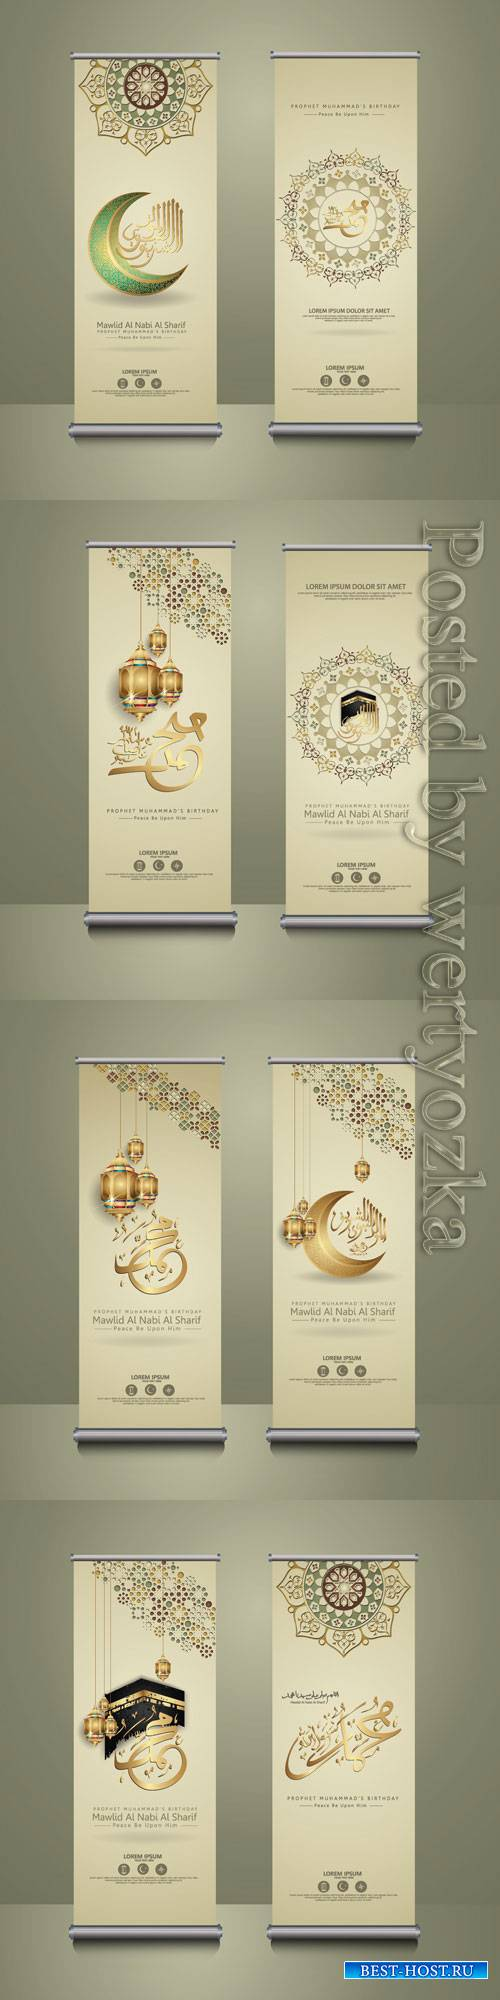 Roll up banner, prophet Muhammad in arabic calligraphy with golden Islamic  ...